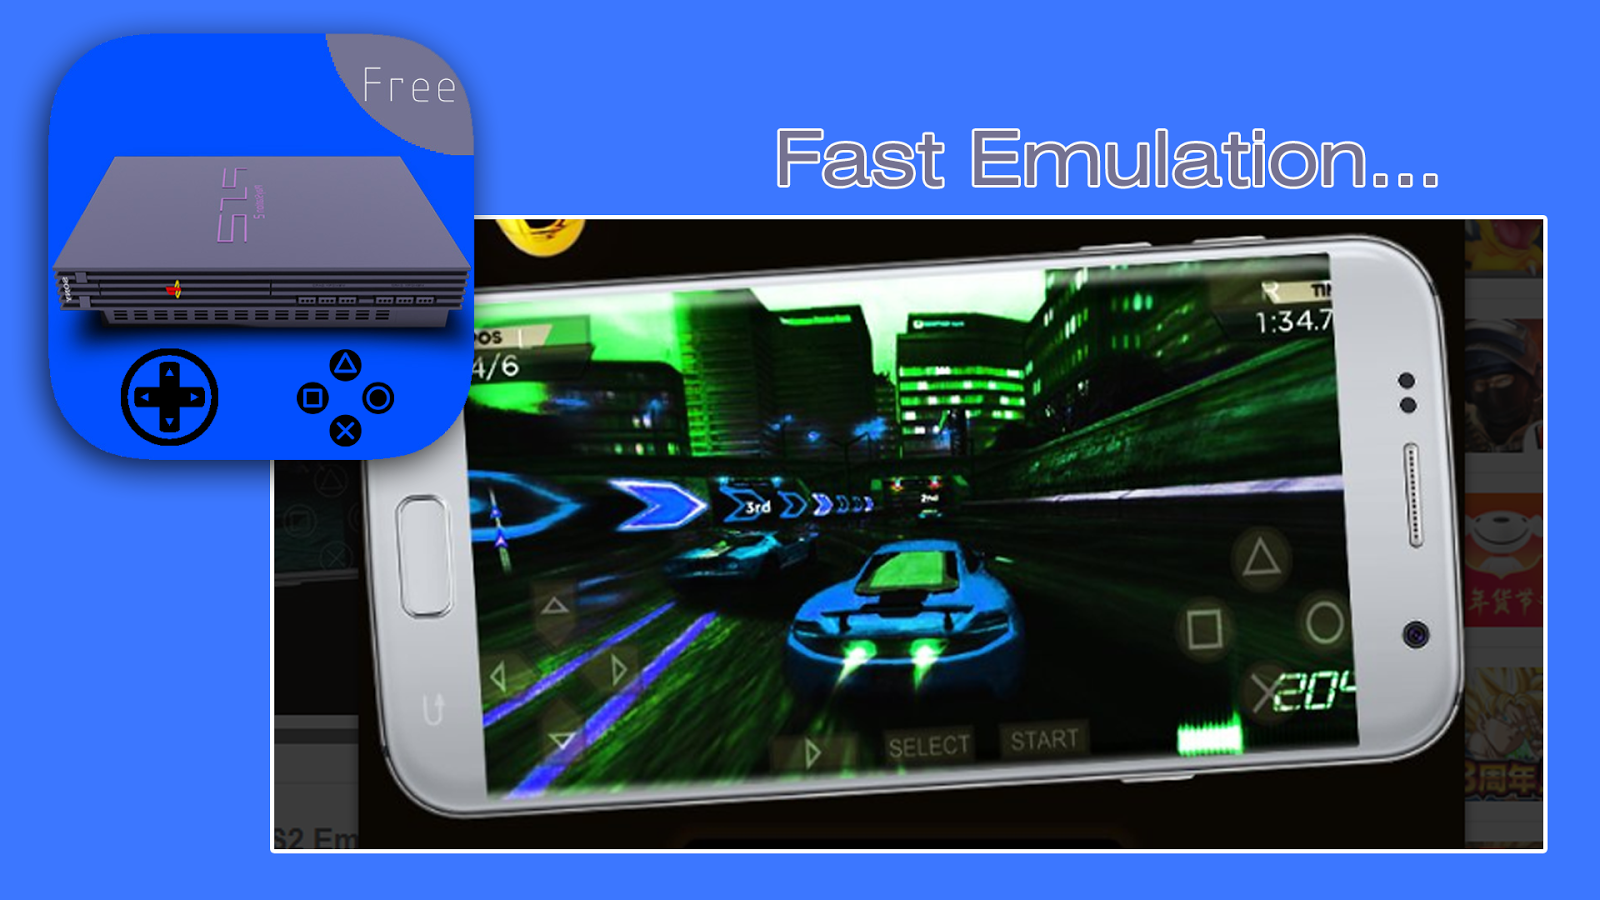 wii u emulator for android 1.8.1